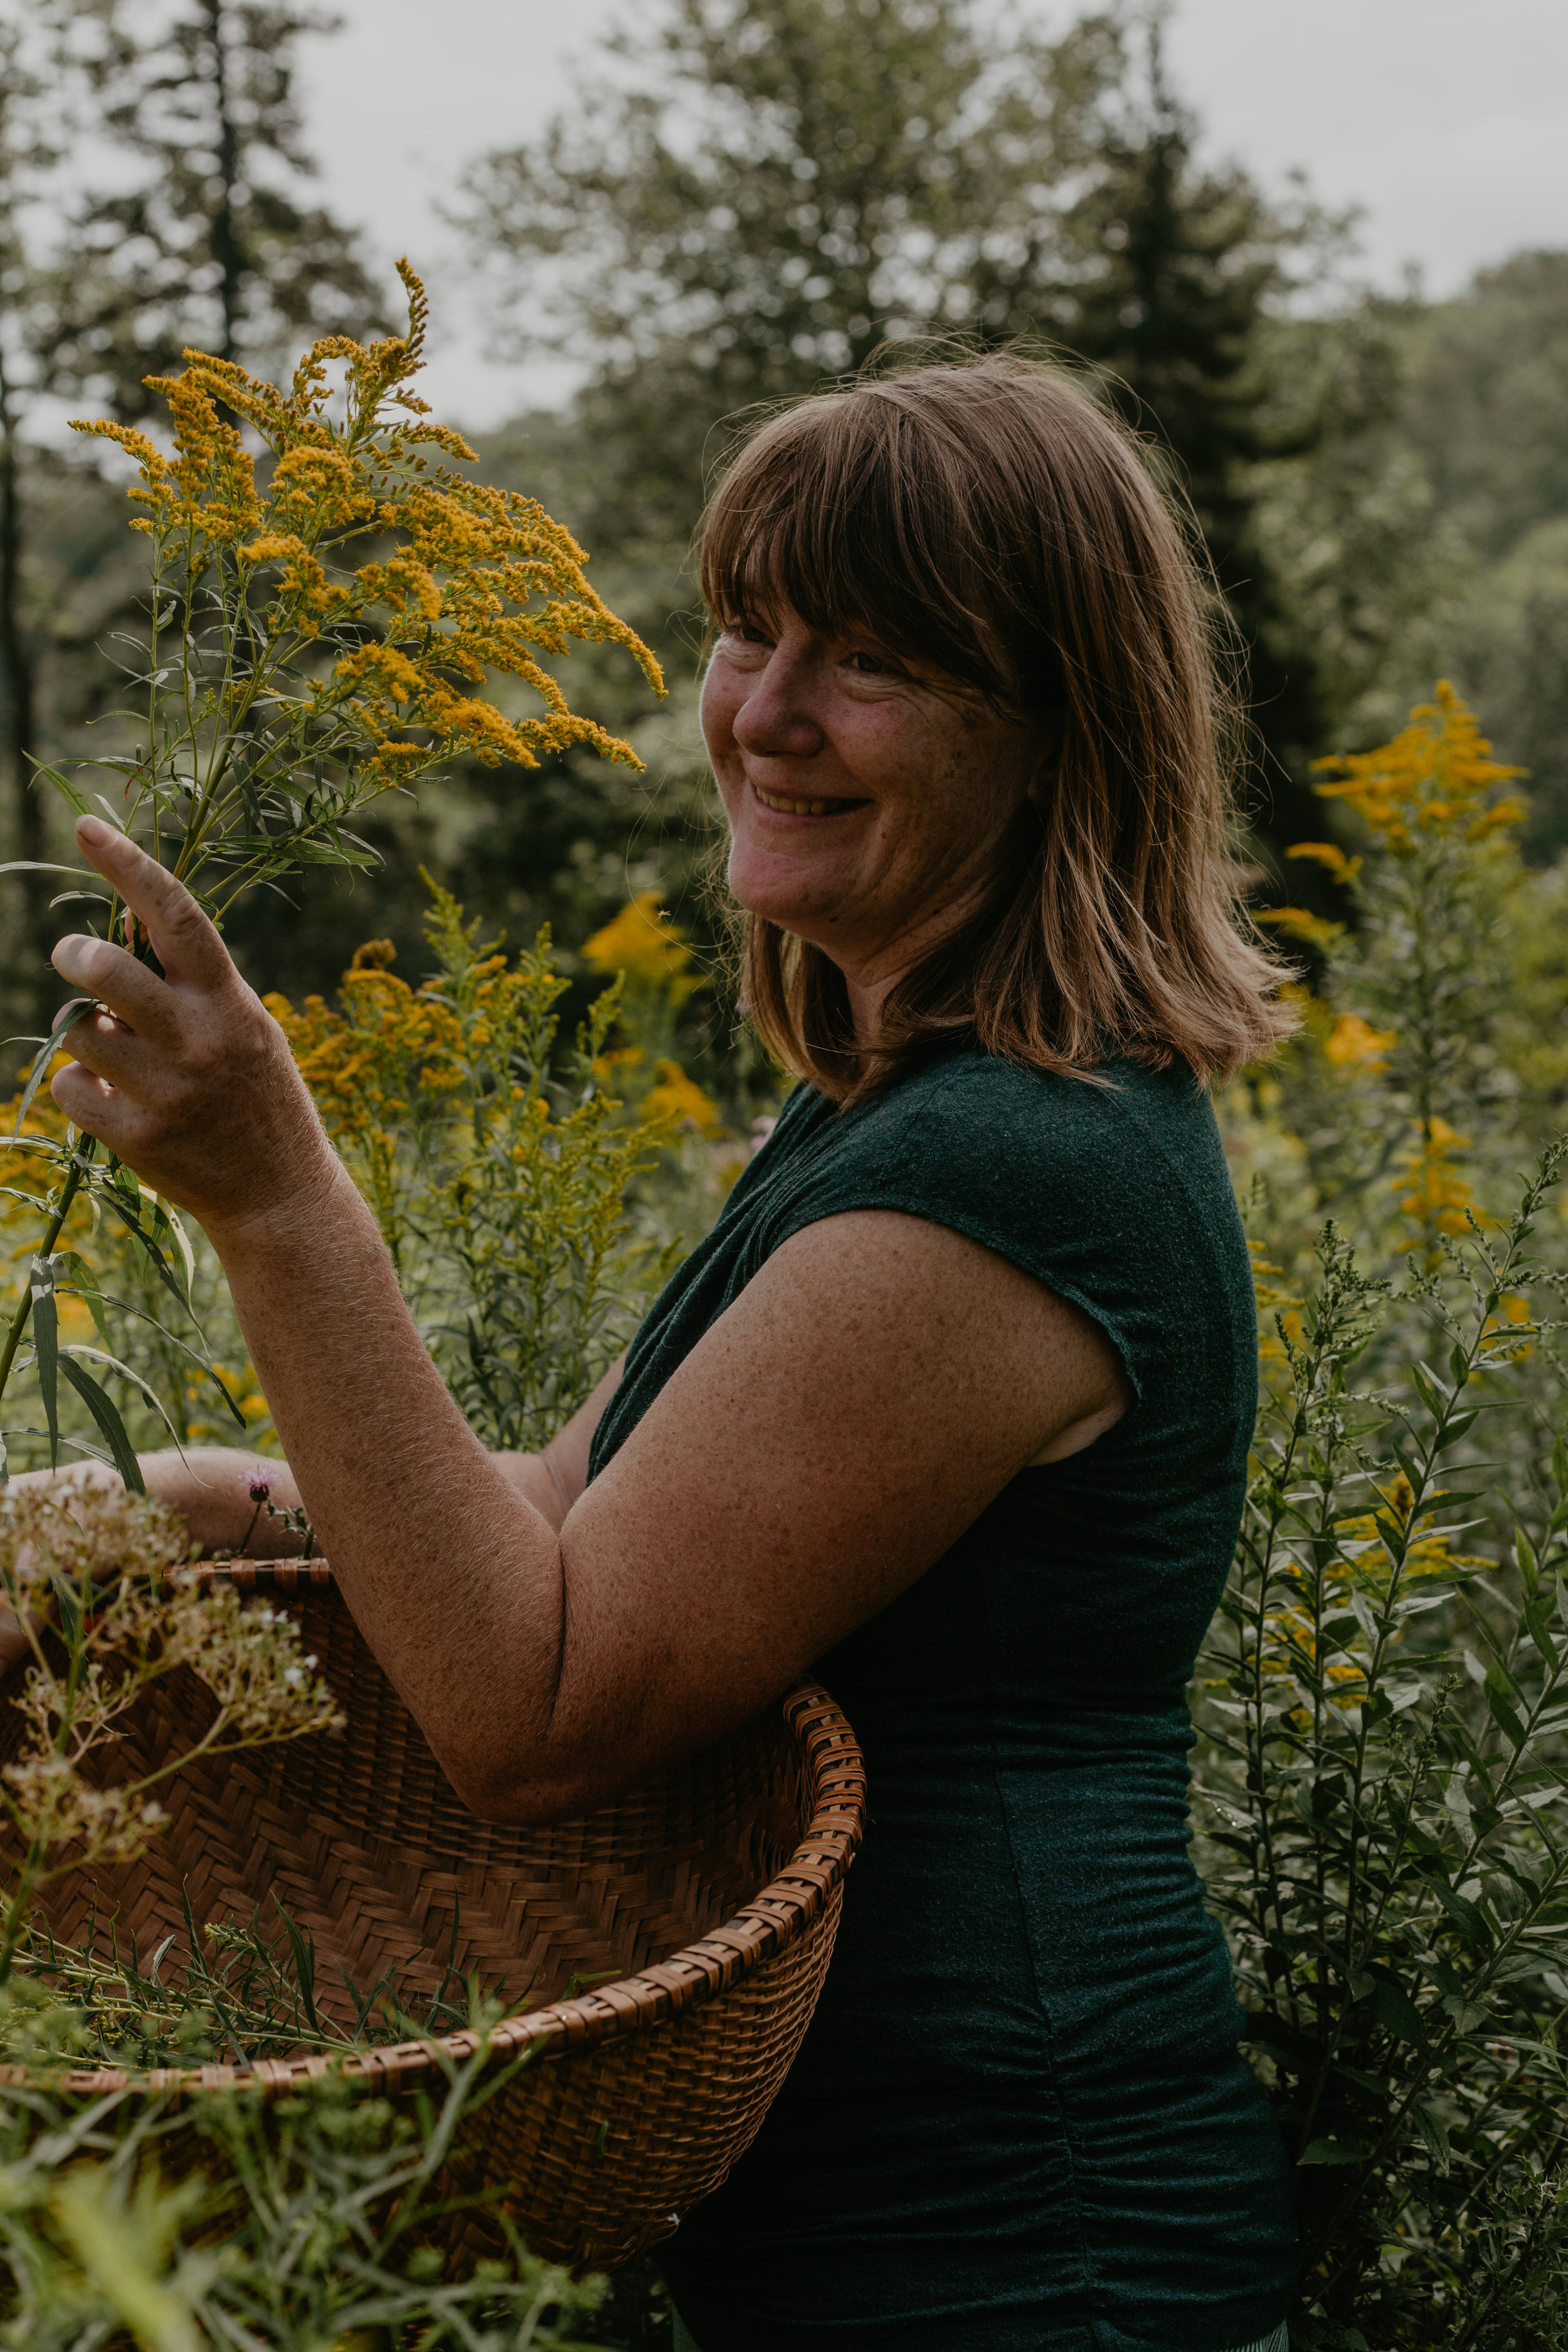 Brighid Doherty, founder of The Solidago School of Herbalism, teacher & community herbalist